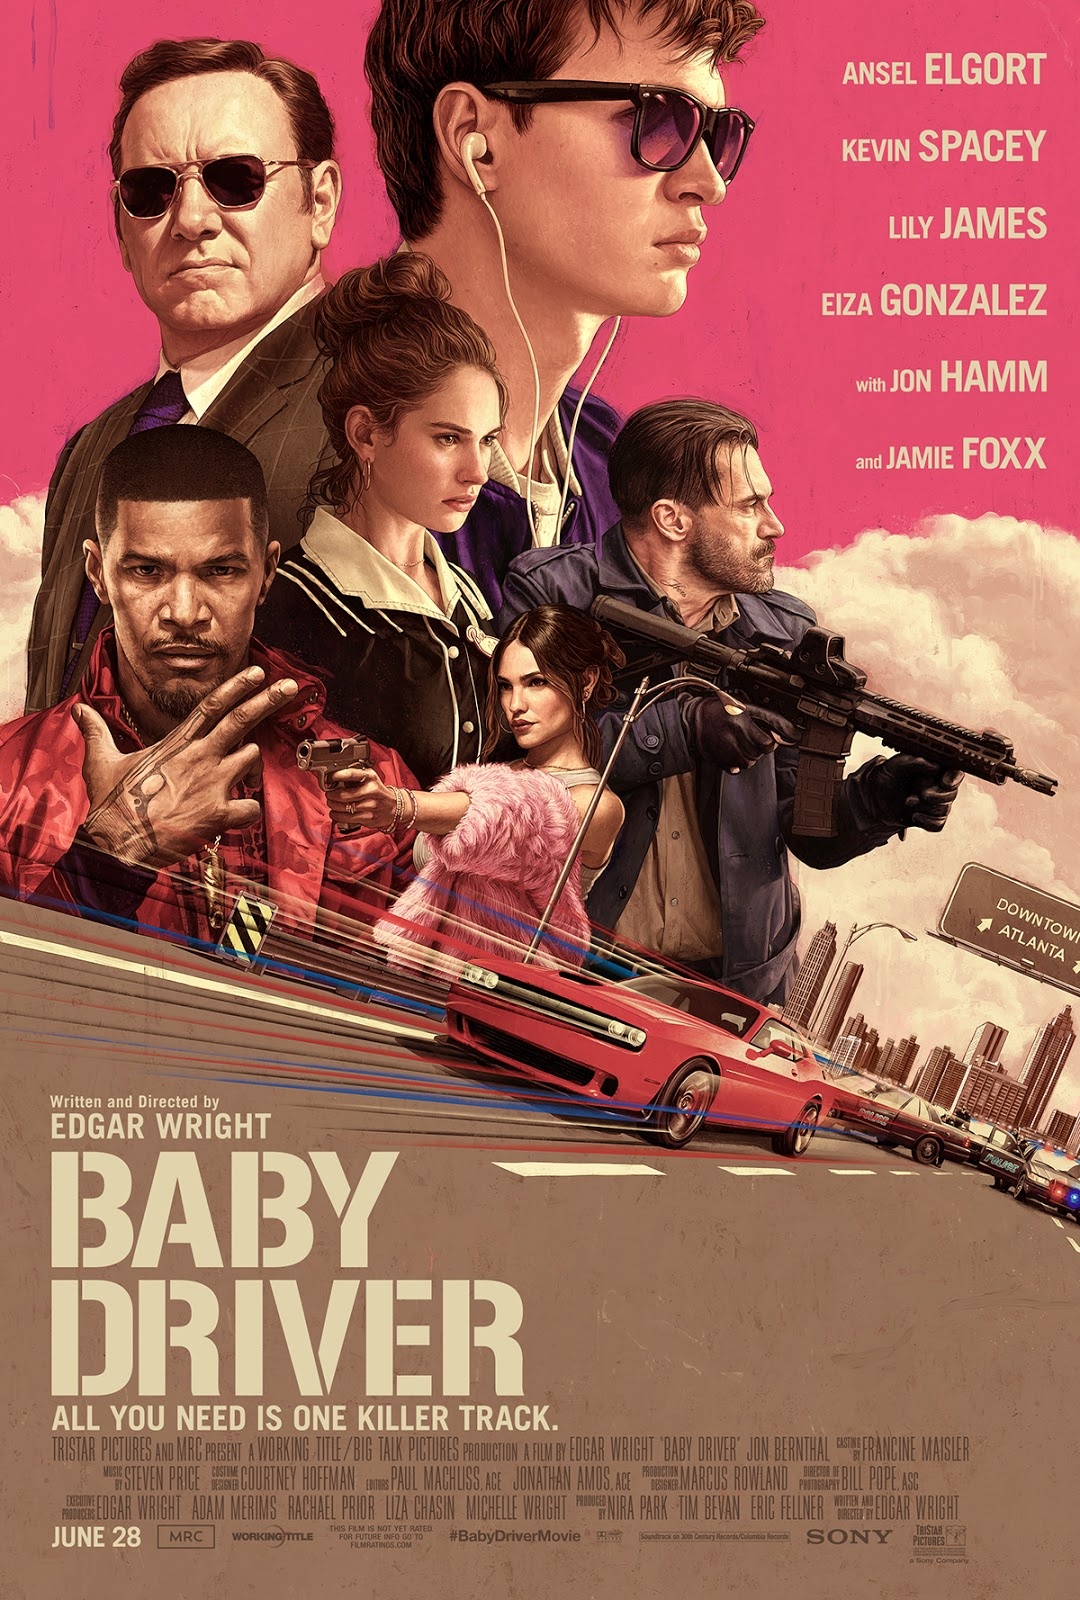 Download Baby Driver (2017) Movie 720p + 1080p BluRay x264 + x265